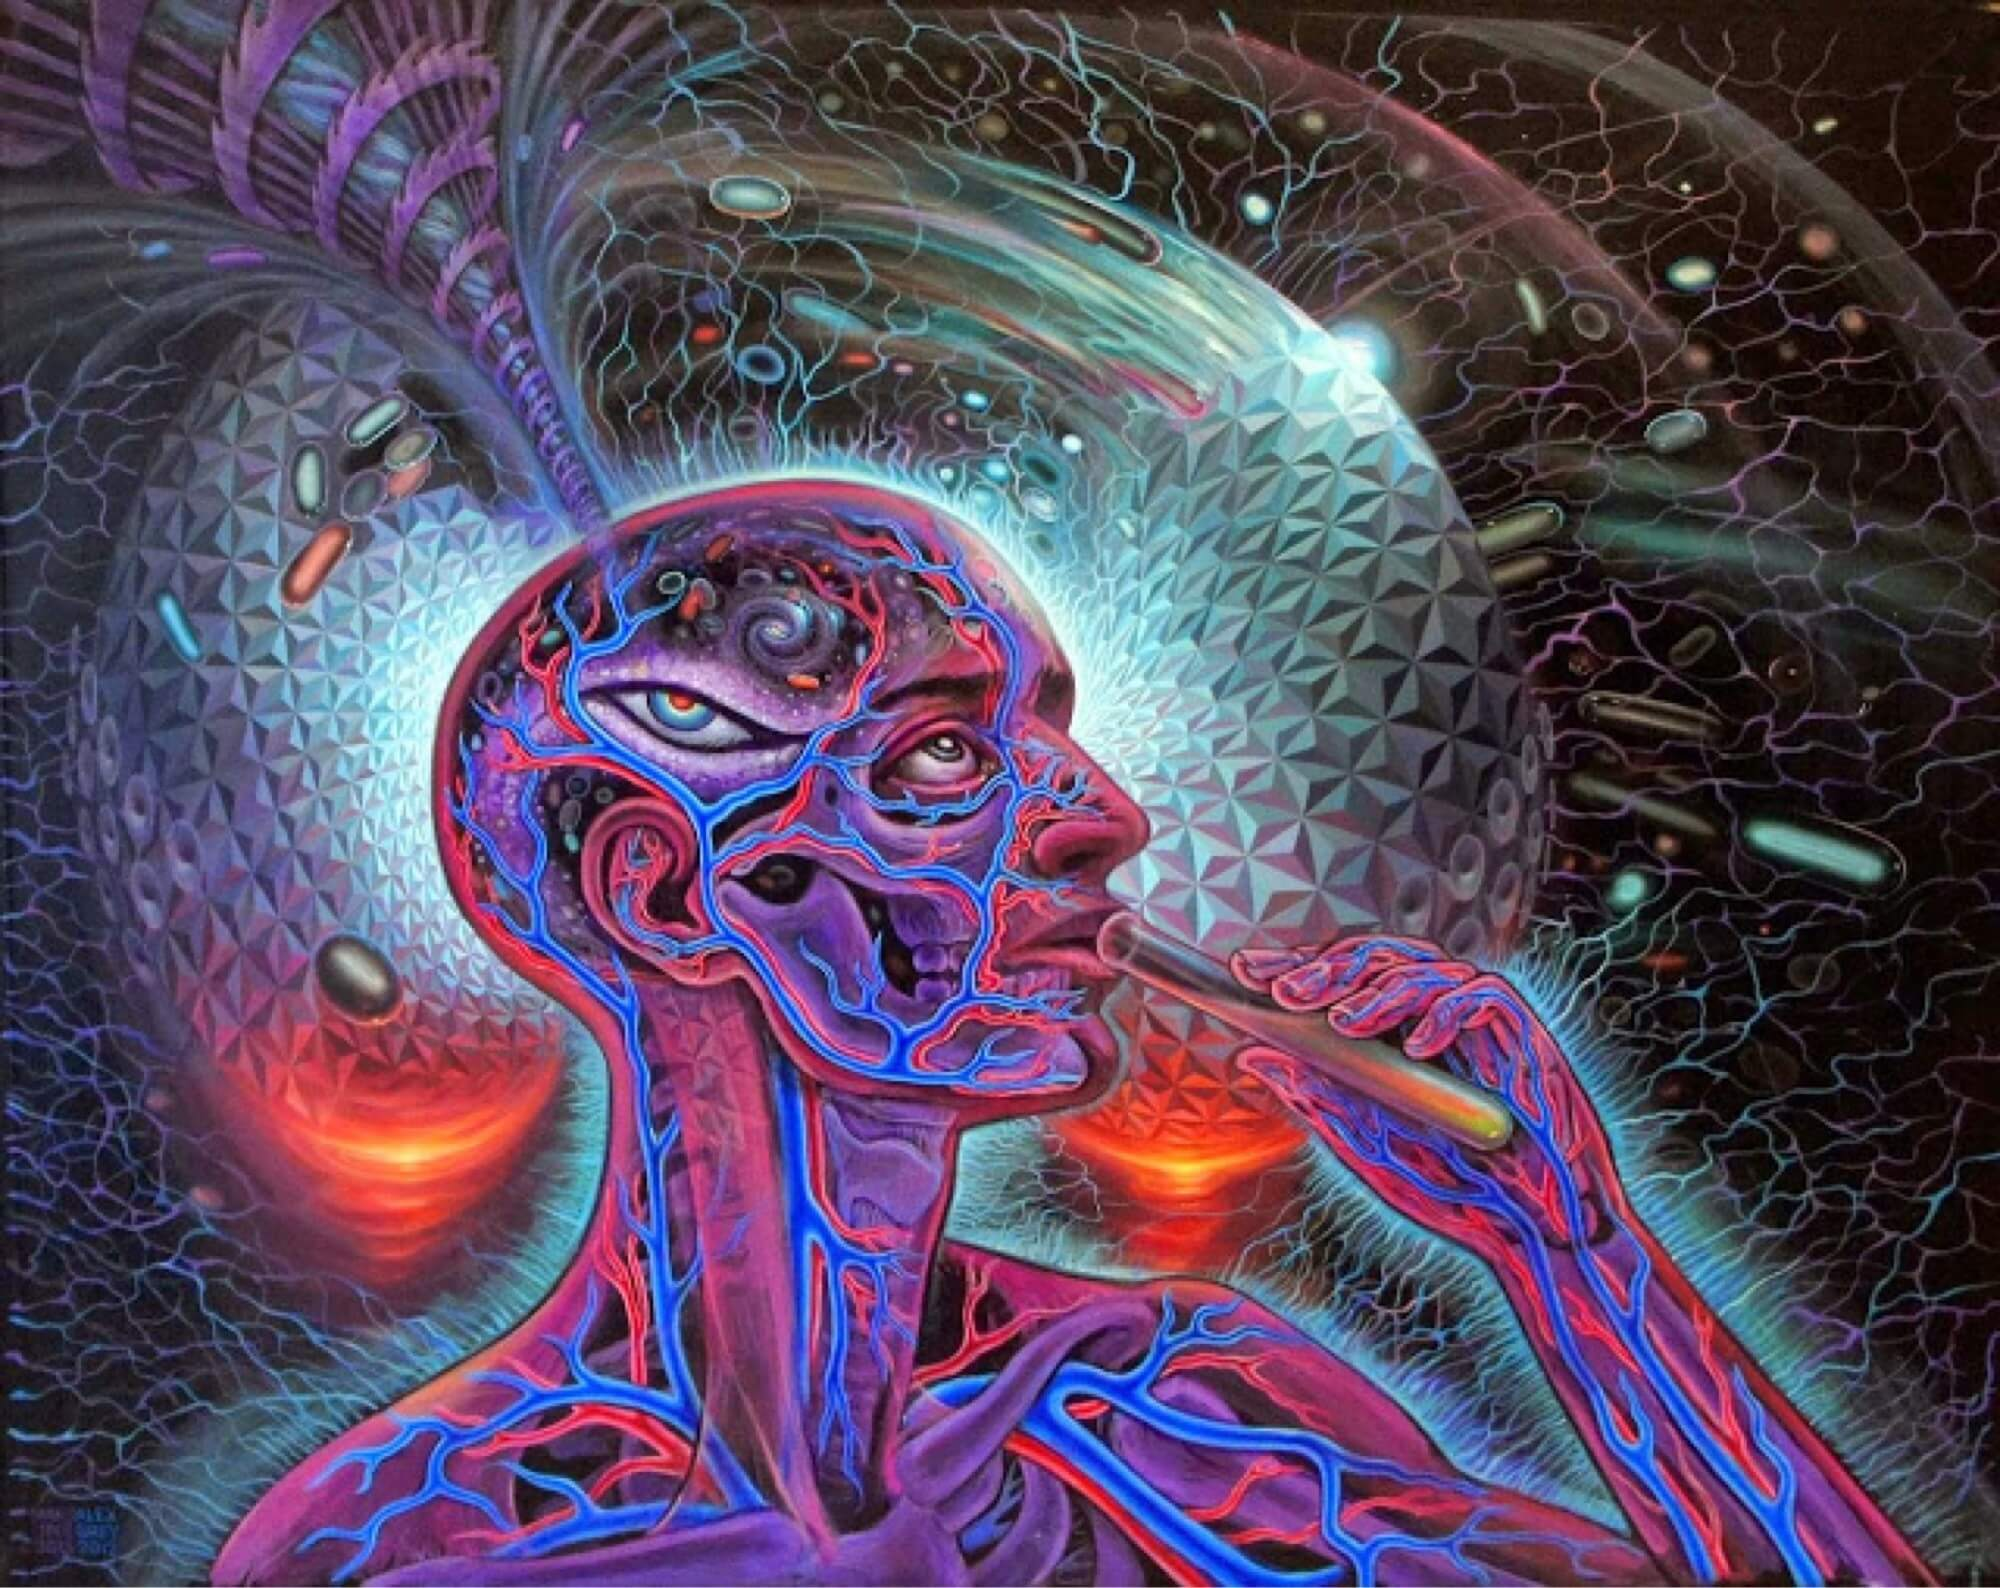 DMT, A Short-Acting Psychedelic, Is Effective Treatment For ...